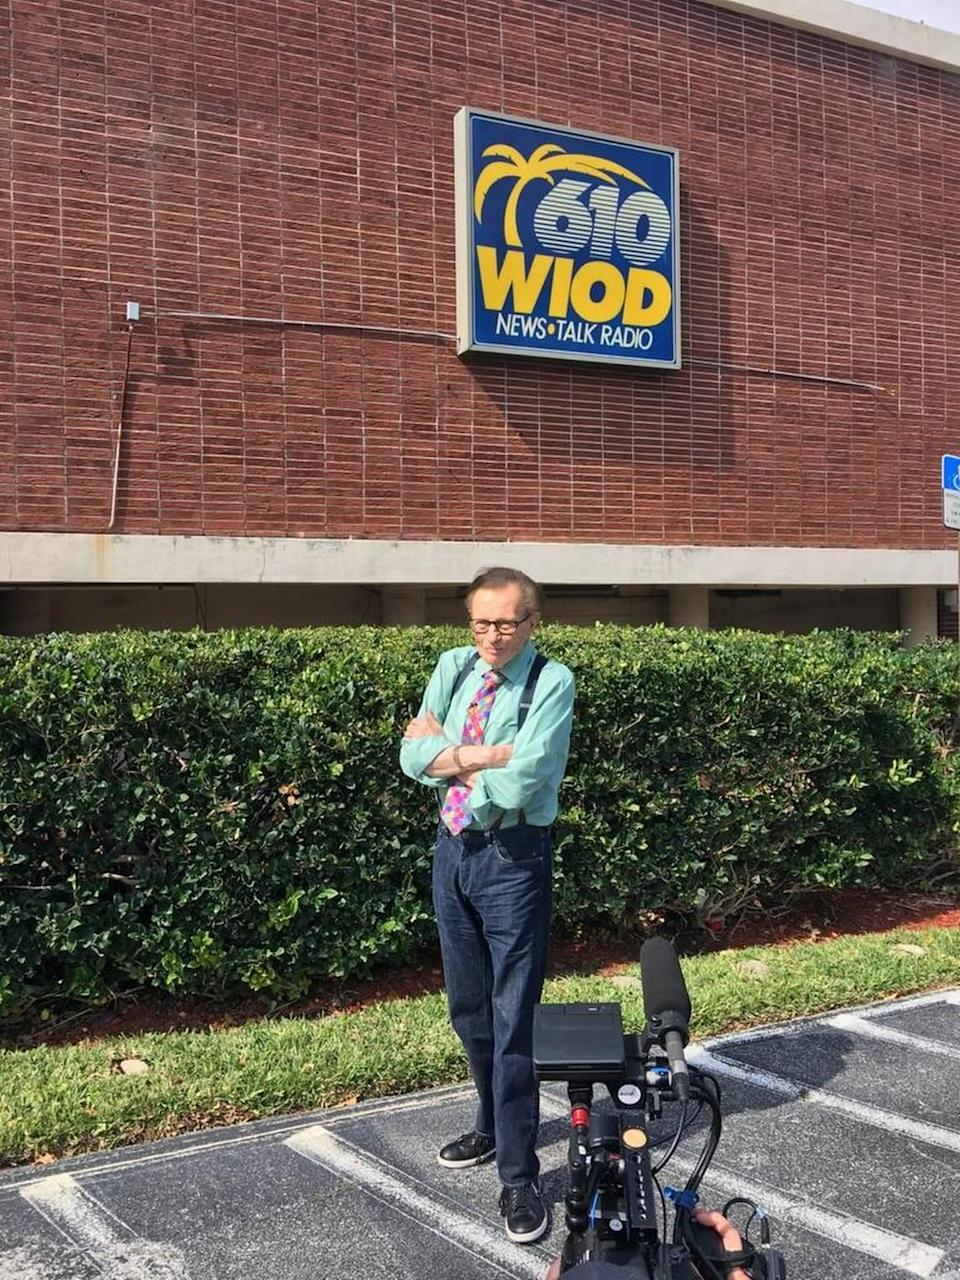 Larry King revisited the site of one of his first jobs in radio, the old WIOD studios in North Bay Village, in April 2017.